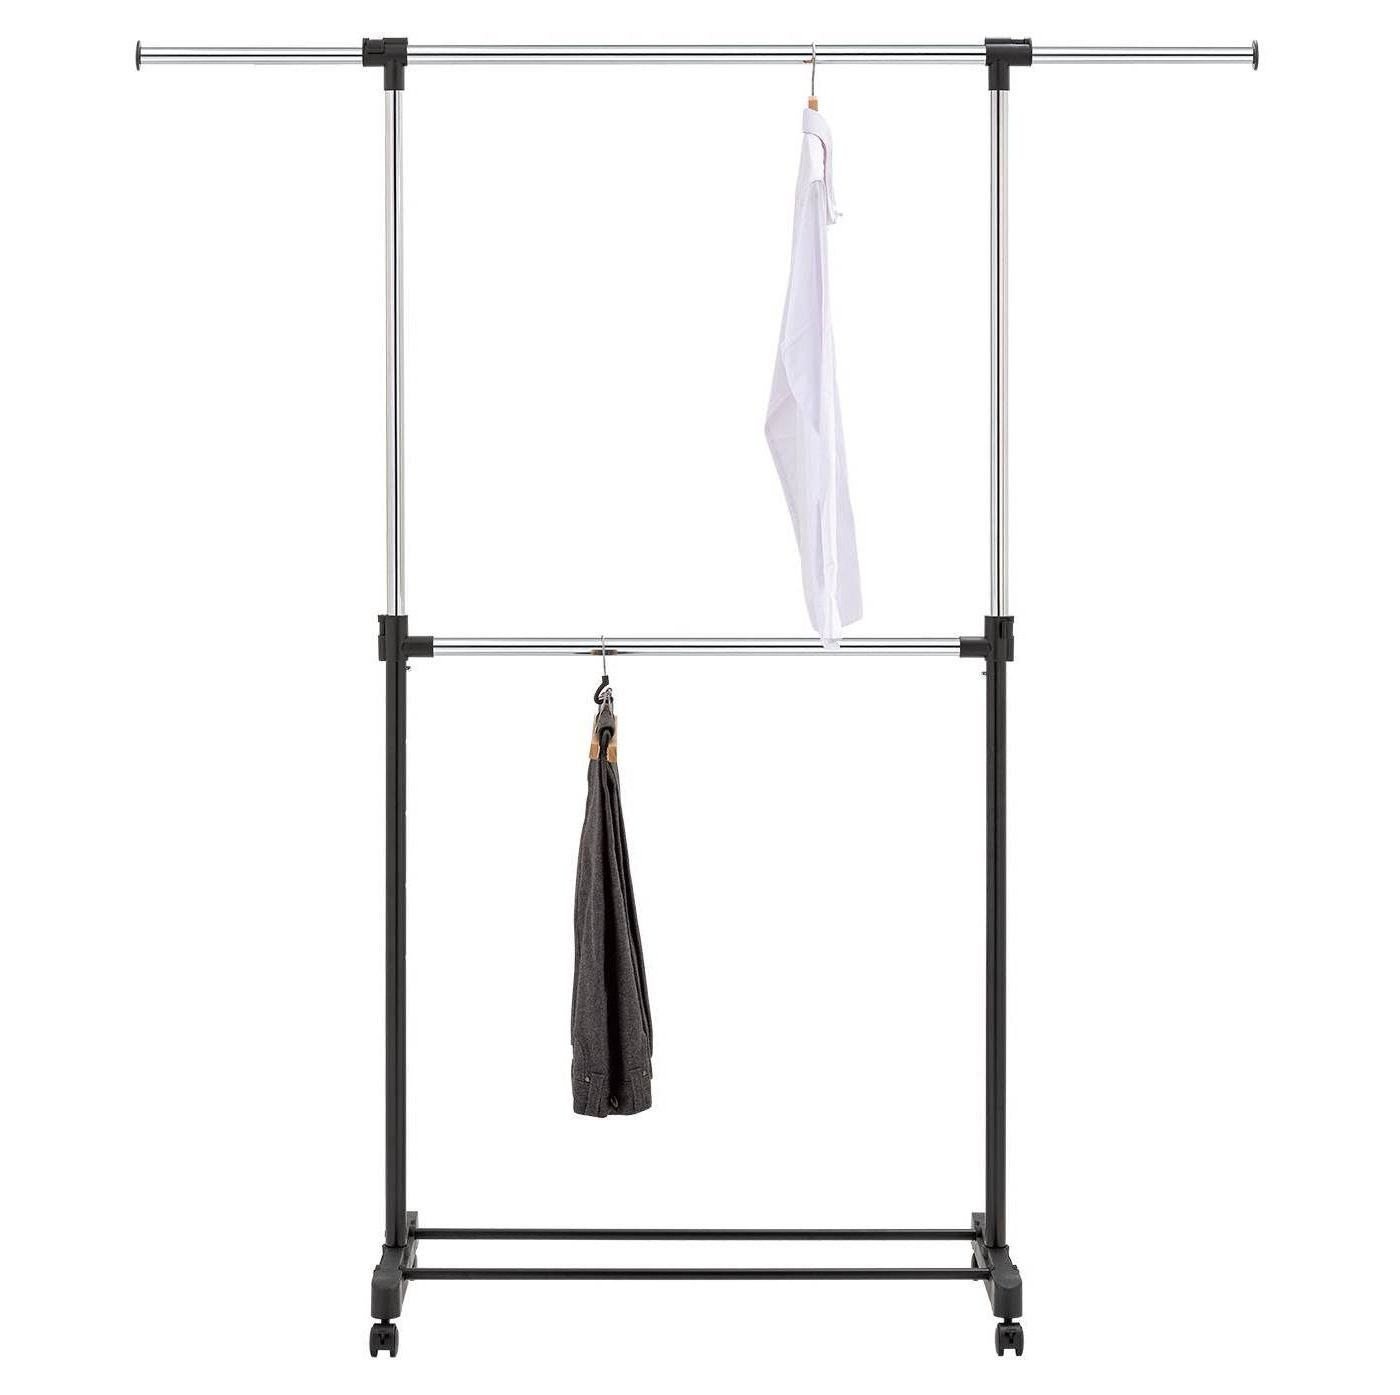 A double garment rack with black and white clothes